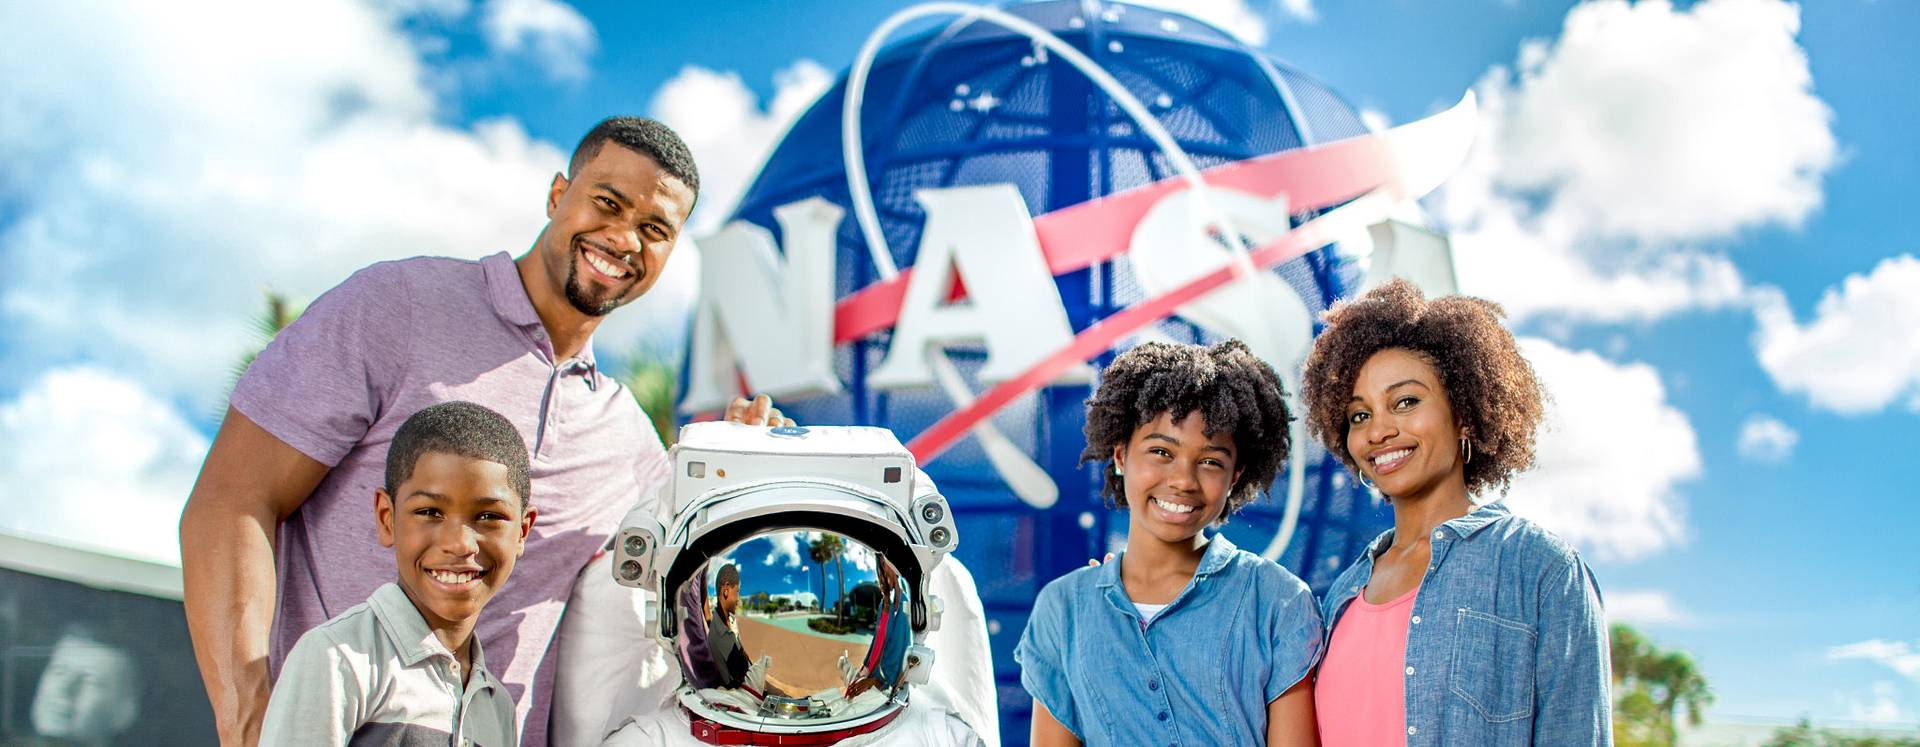 A family posing for a picture with an astronaut